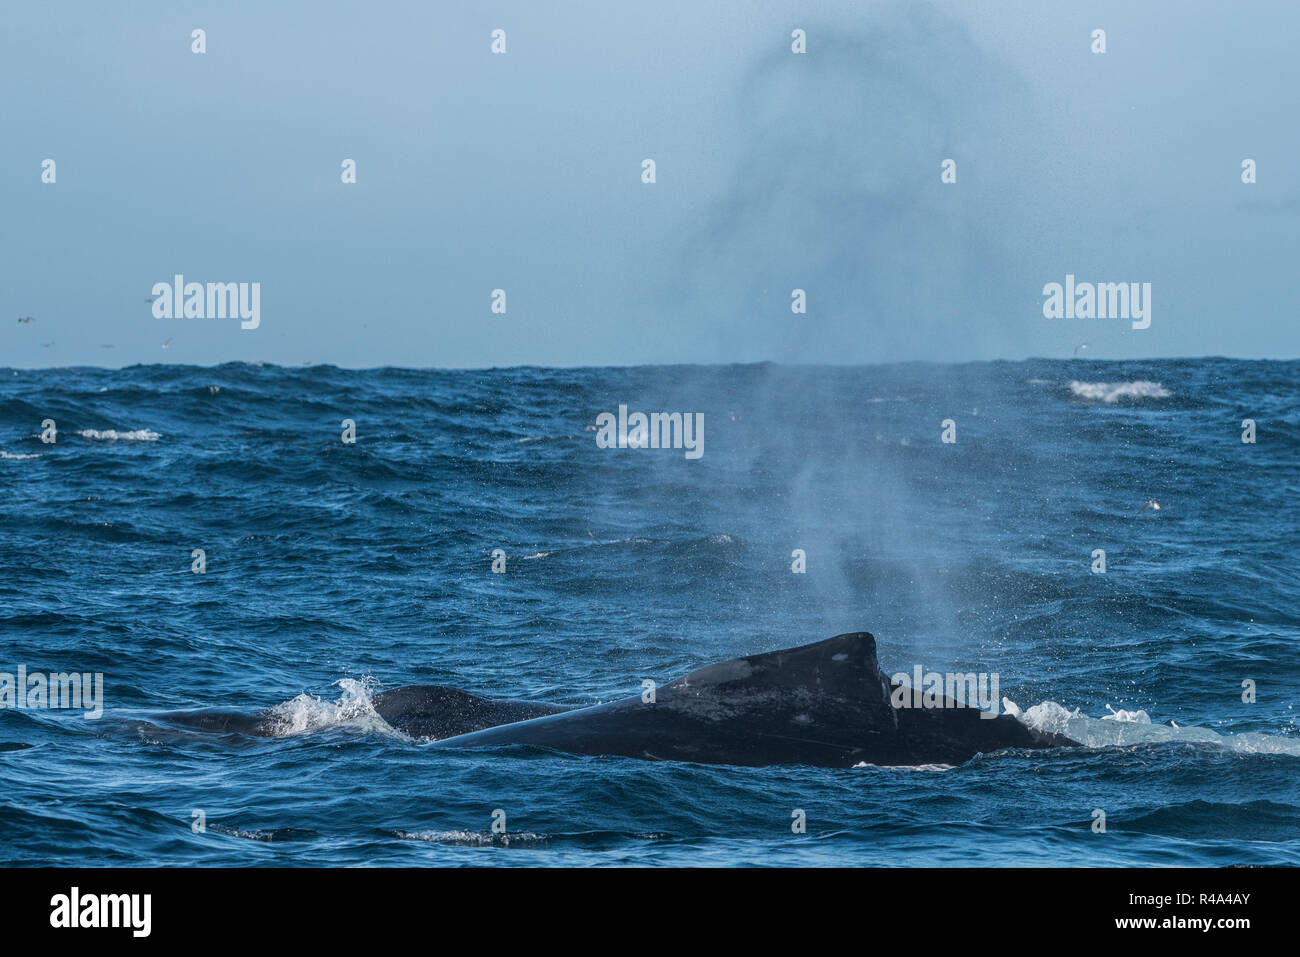 A humpback whale briefly surfaces and sends up a plume of spray in the Farallon islands national marine sanctuary off the coast of San Francisco. Stock Photo